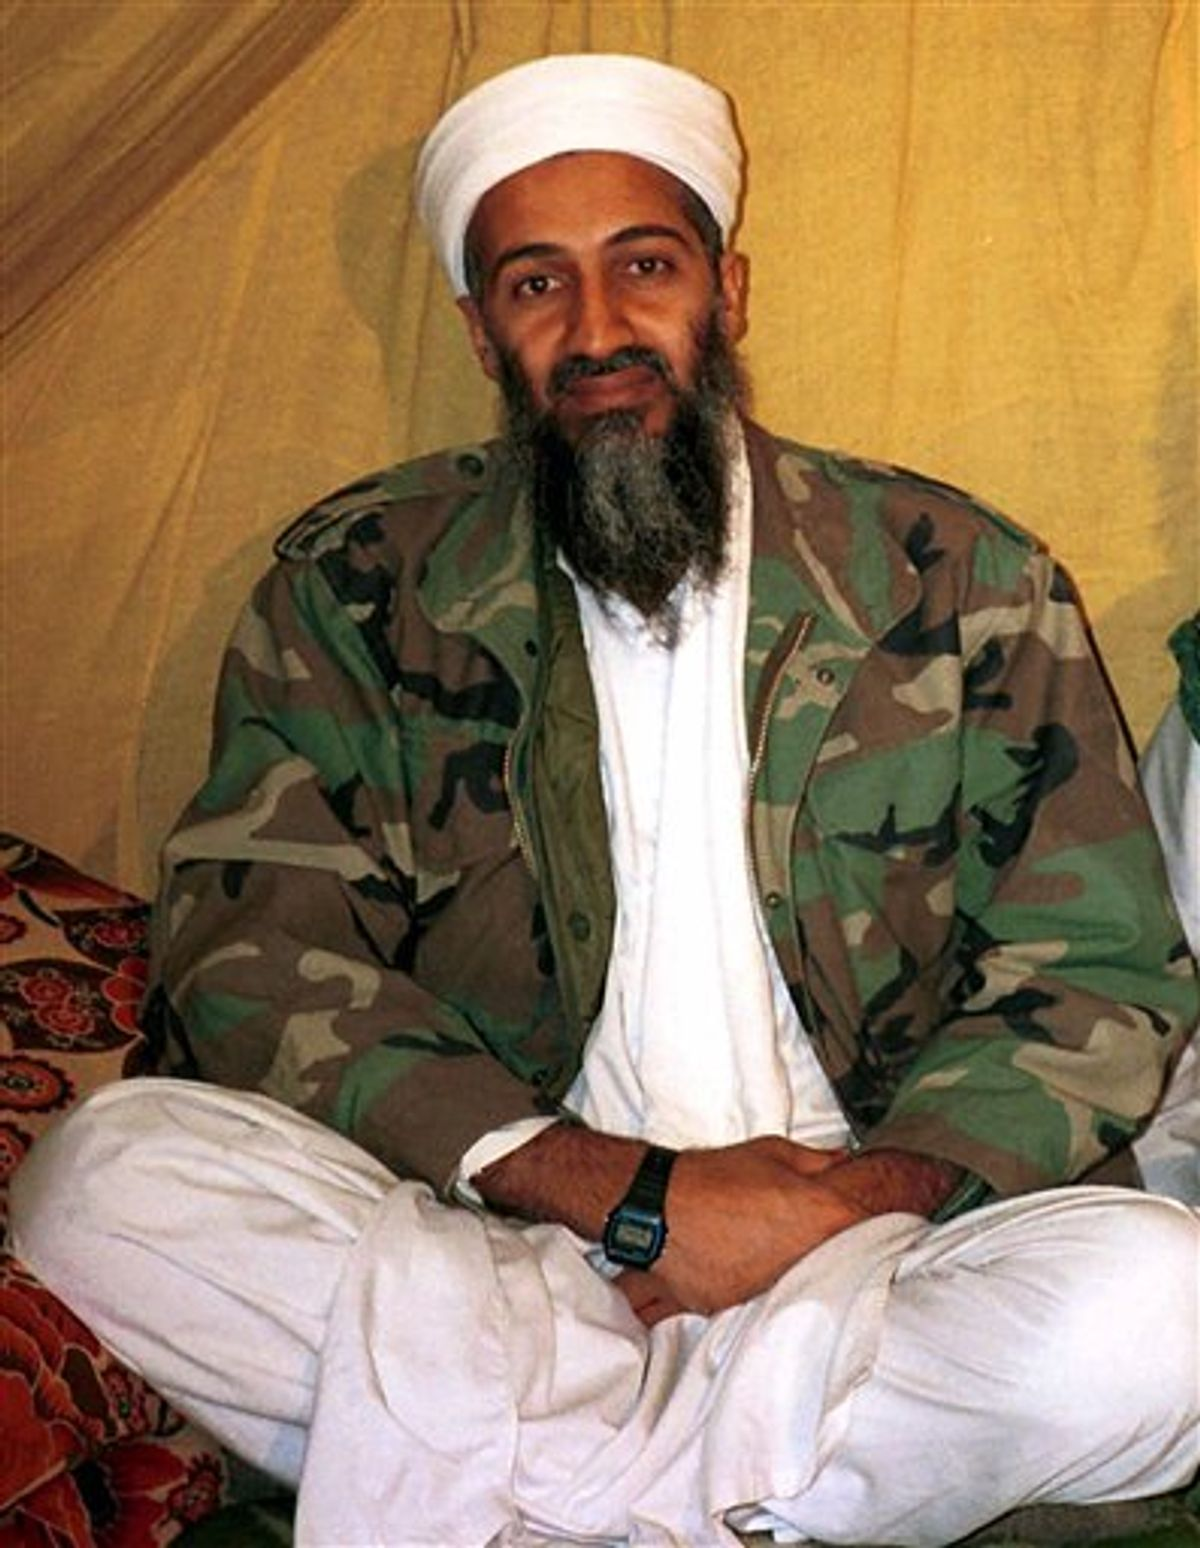 This is an undated file photo shows then-al Qaida leader Osama bin Laden, in Afghanistan. After Navy SEALs killed Osama bin Laden, the White House released a photo of President Barack Obama and his cabinet inside the Situation Room, watching the daring raid unfold. Hidden from view, standing just outside the frame of that instantly iconic photograph was a career CIA analyst. In the hunt for the world's most-wanted terrorist, there may have been no one more important. His job for nearly a decade: finding bin Laden. (AP Photo) (AP)